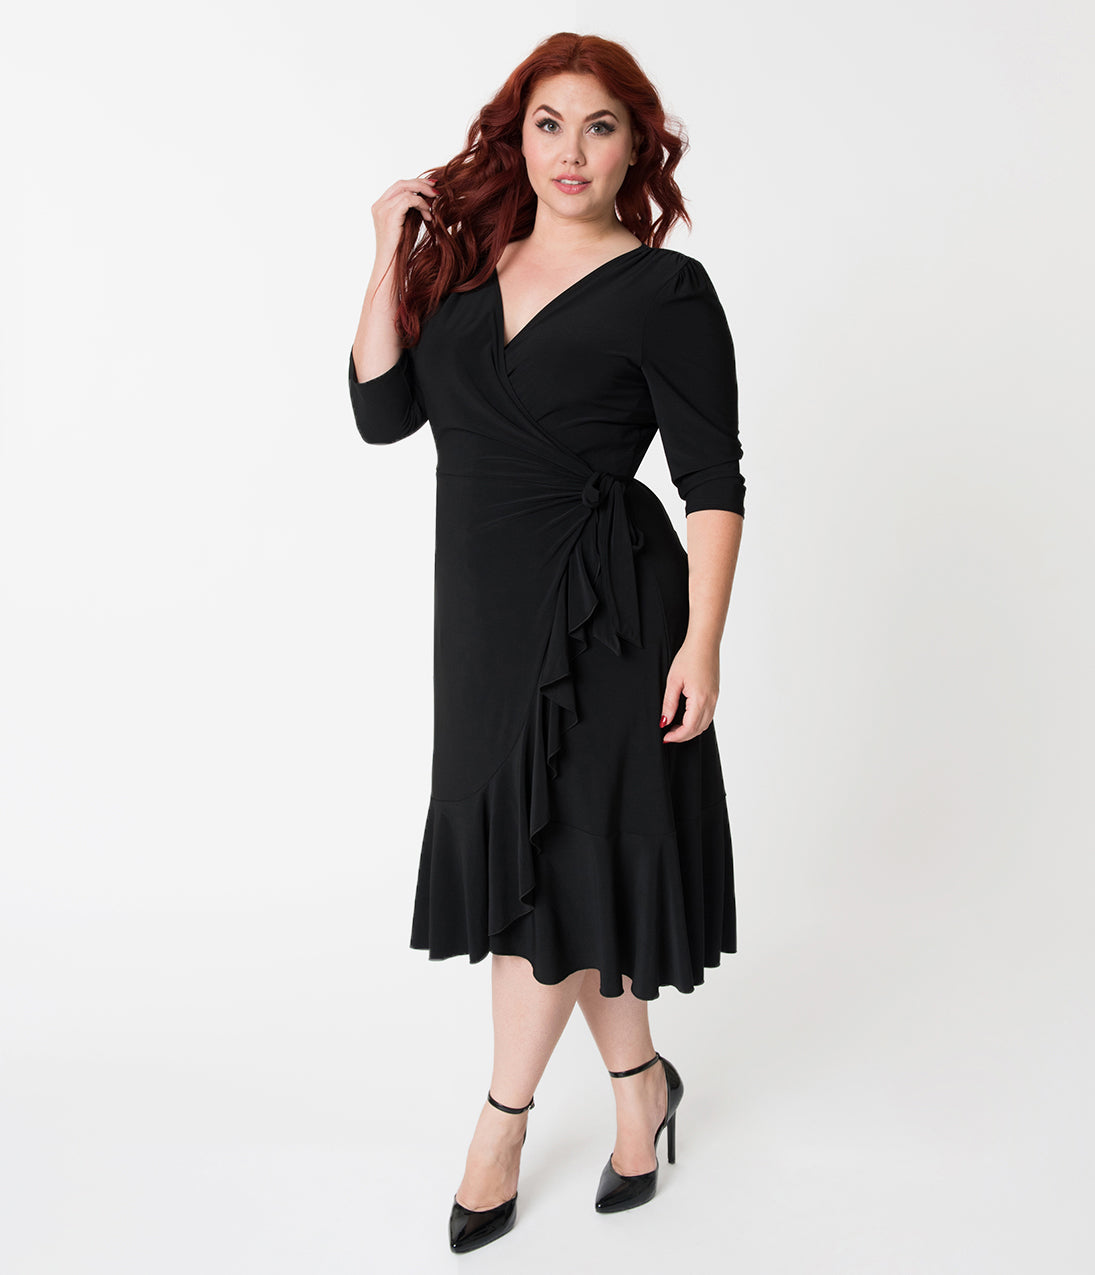 1950s Dresses, 50s Dresses | 1950s Style Dresses Plus Size Black Three-Quarter Sleeved Whimsy Wrap Dress $88.00 AT vintagedancer.com